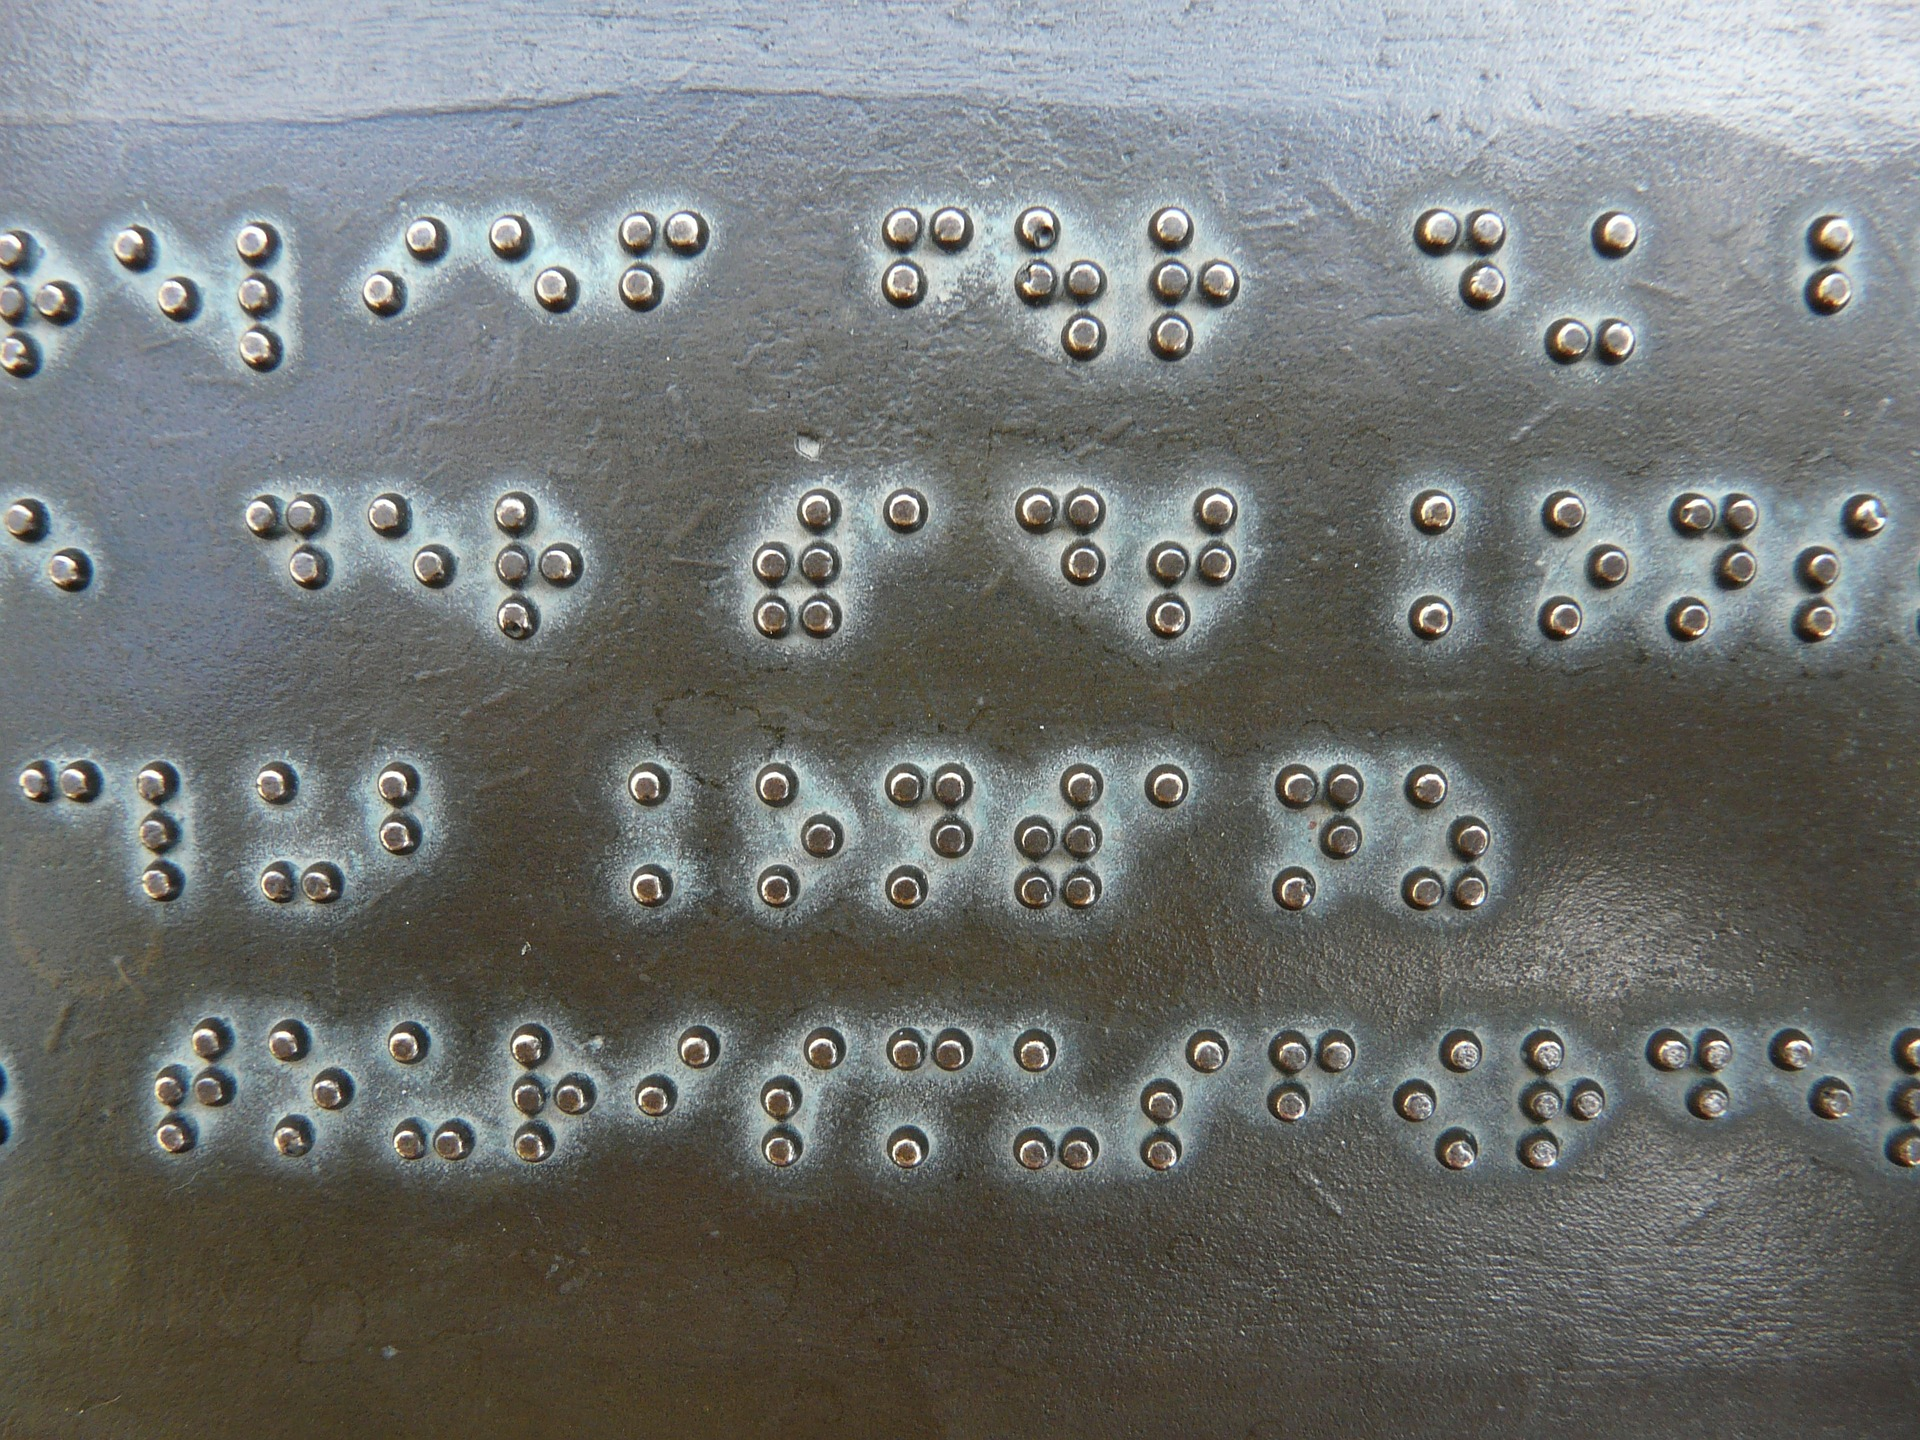 Image of Braille